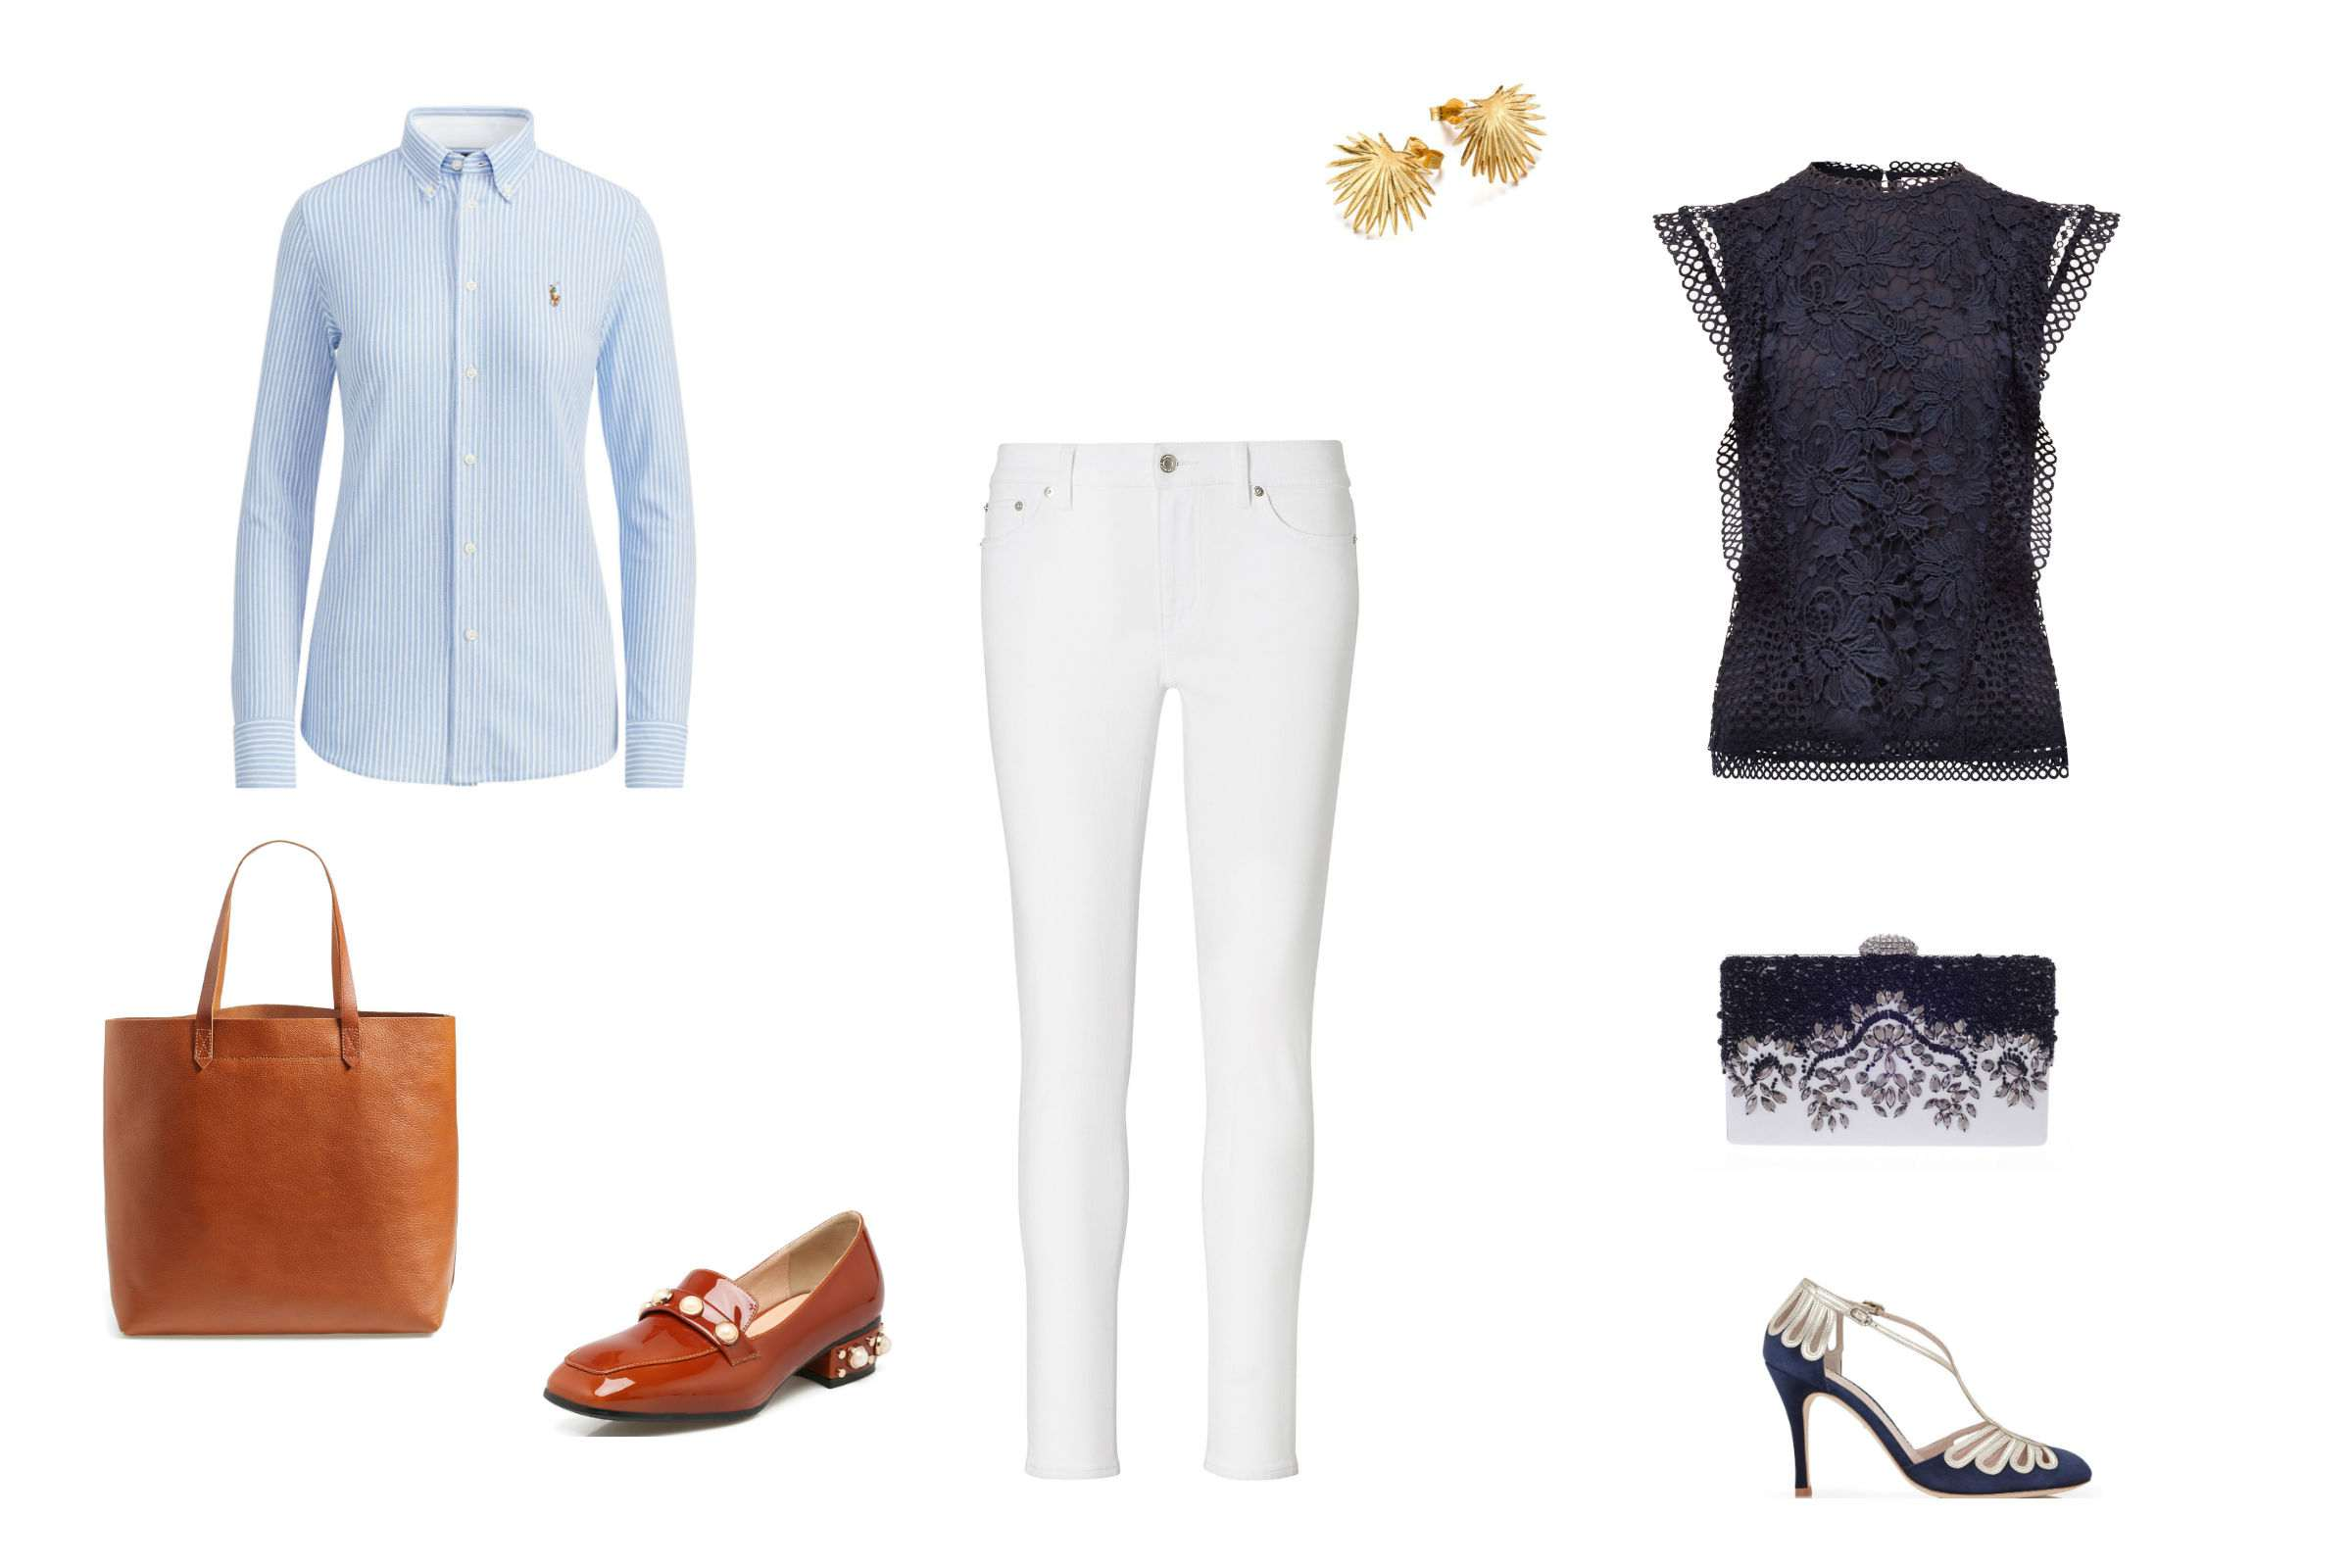 10 Ways to Dress Up Jeans for a Night Out